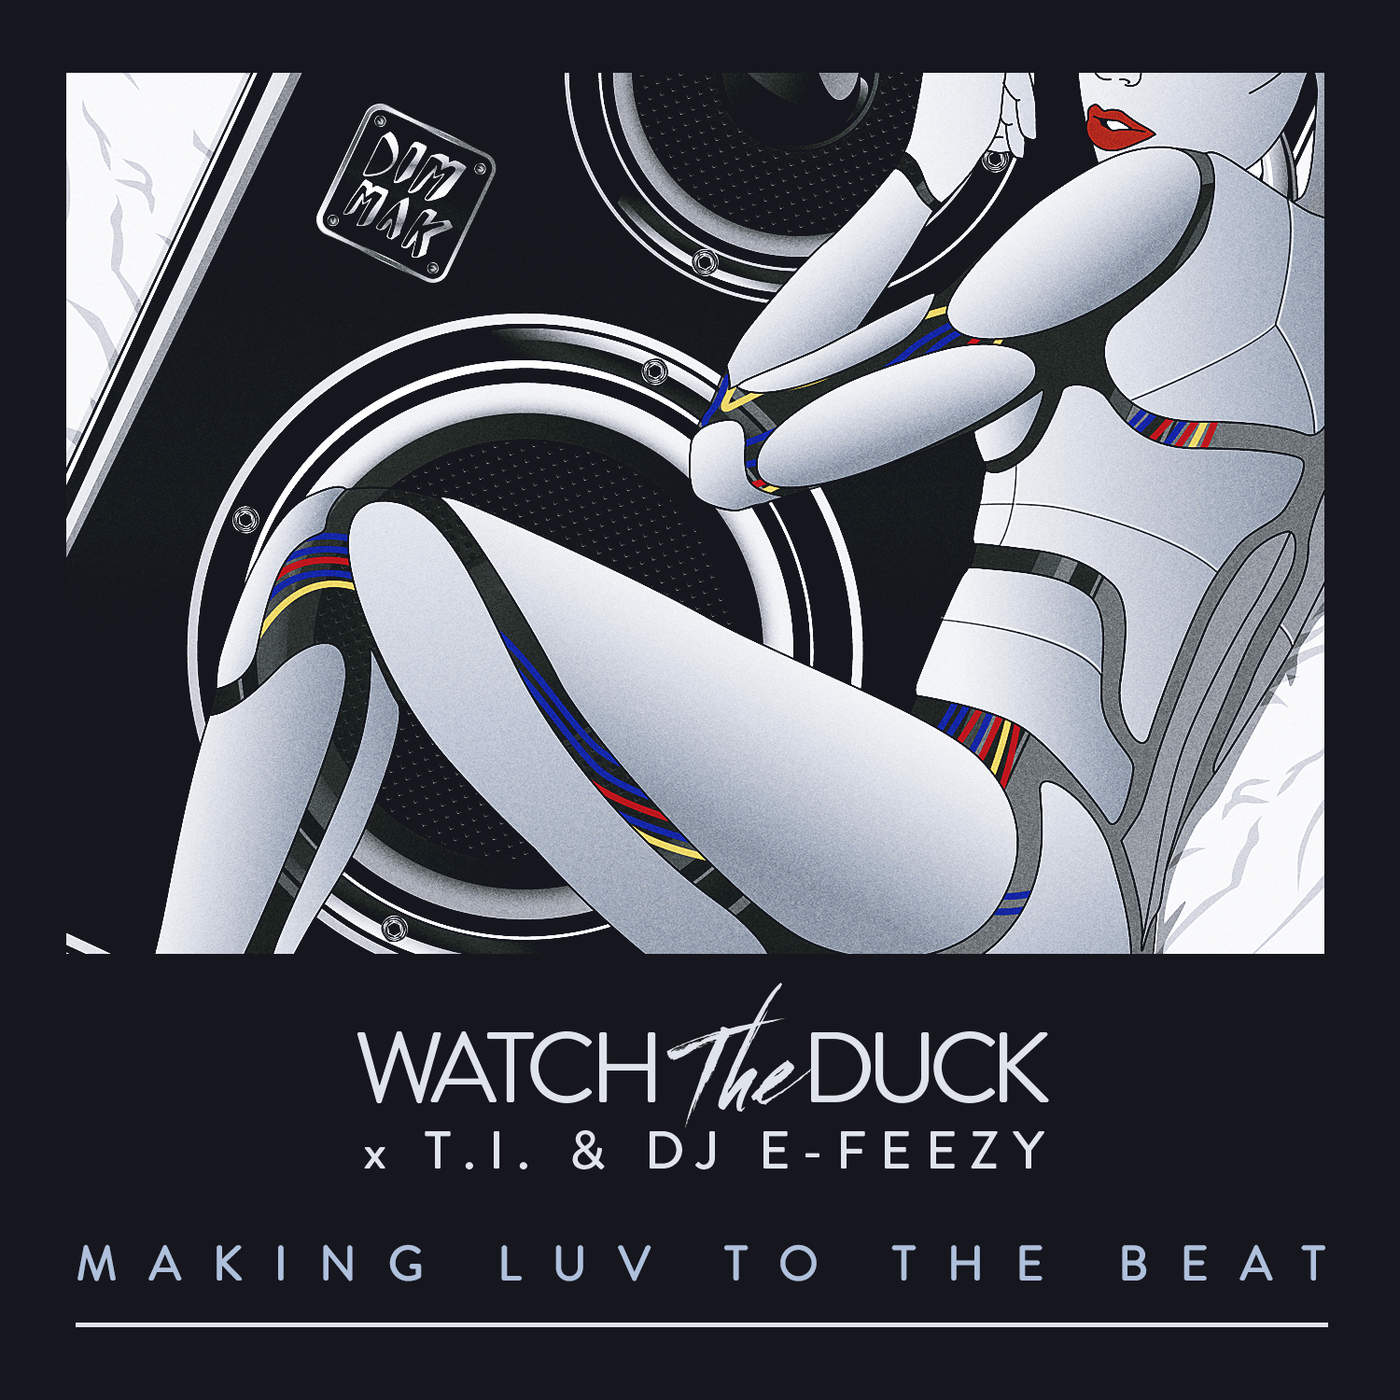 WatchTheDuck, T.I. & DJ E-Feezy - Making Luv to the Beat - Single Cover